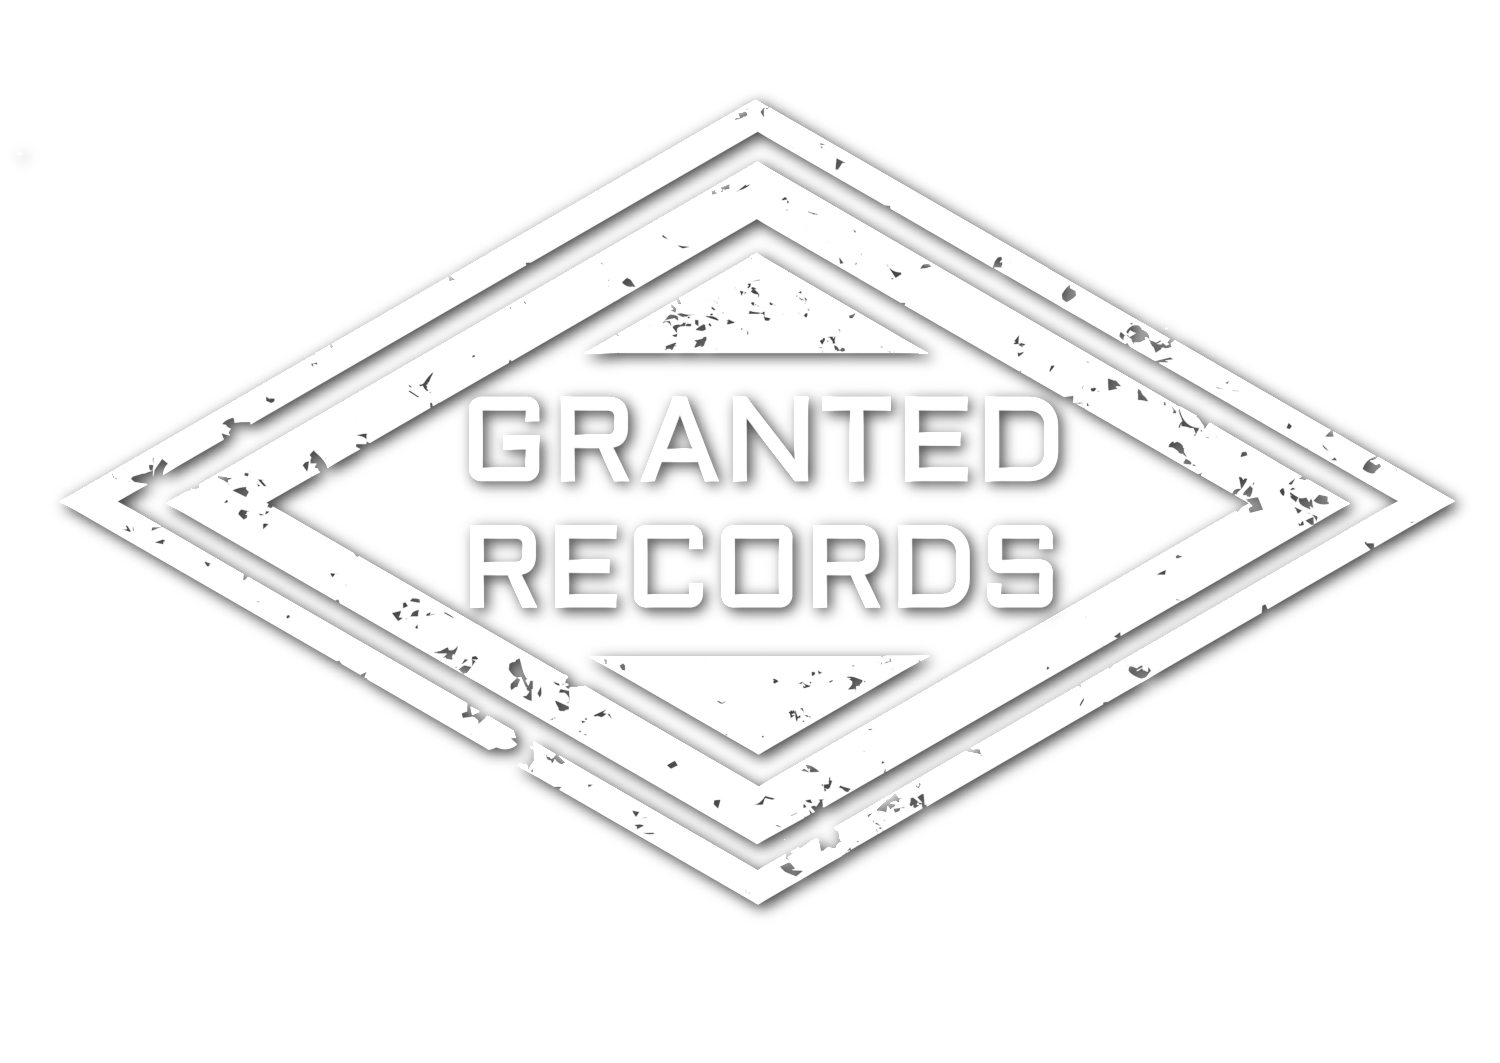 Granted Records